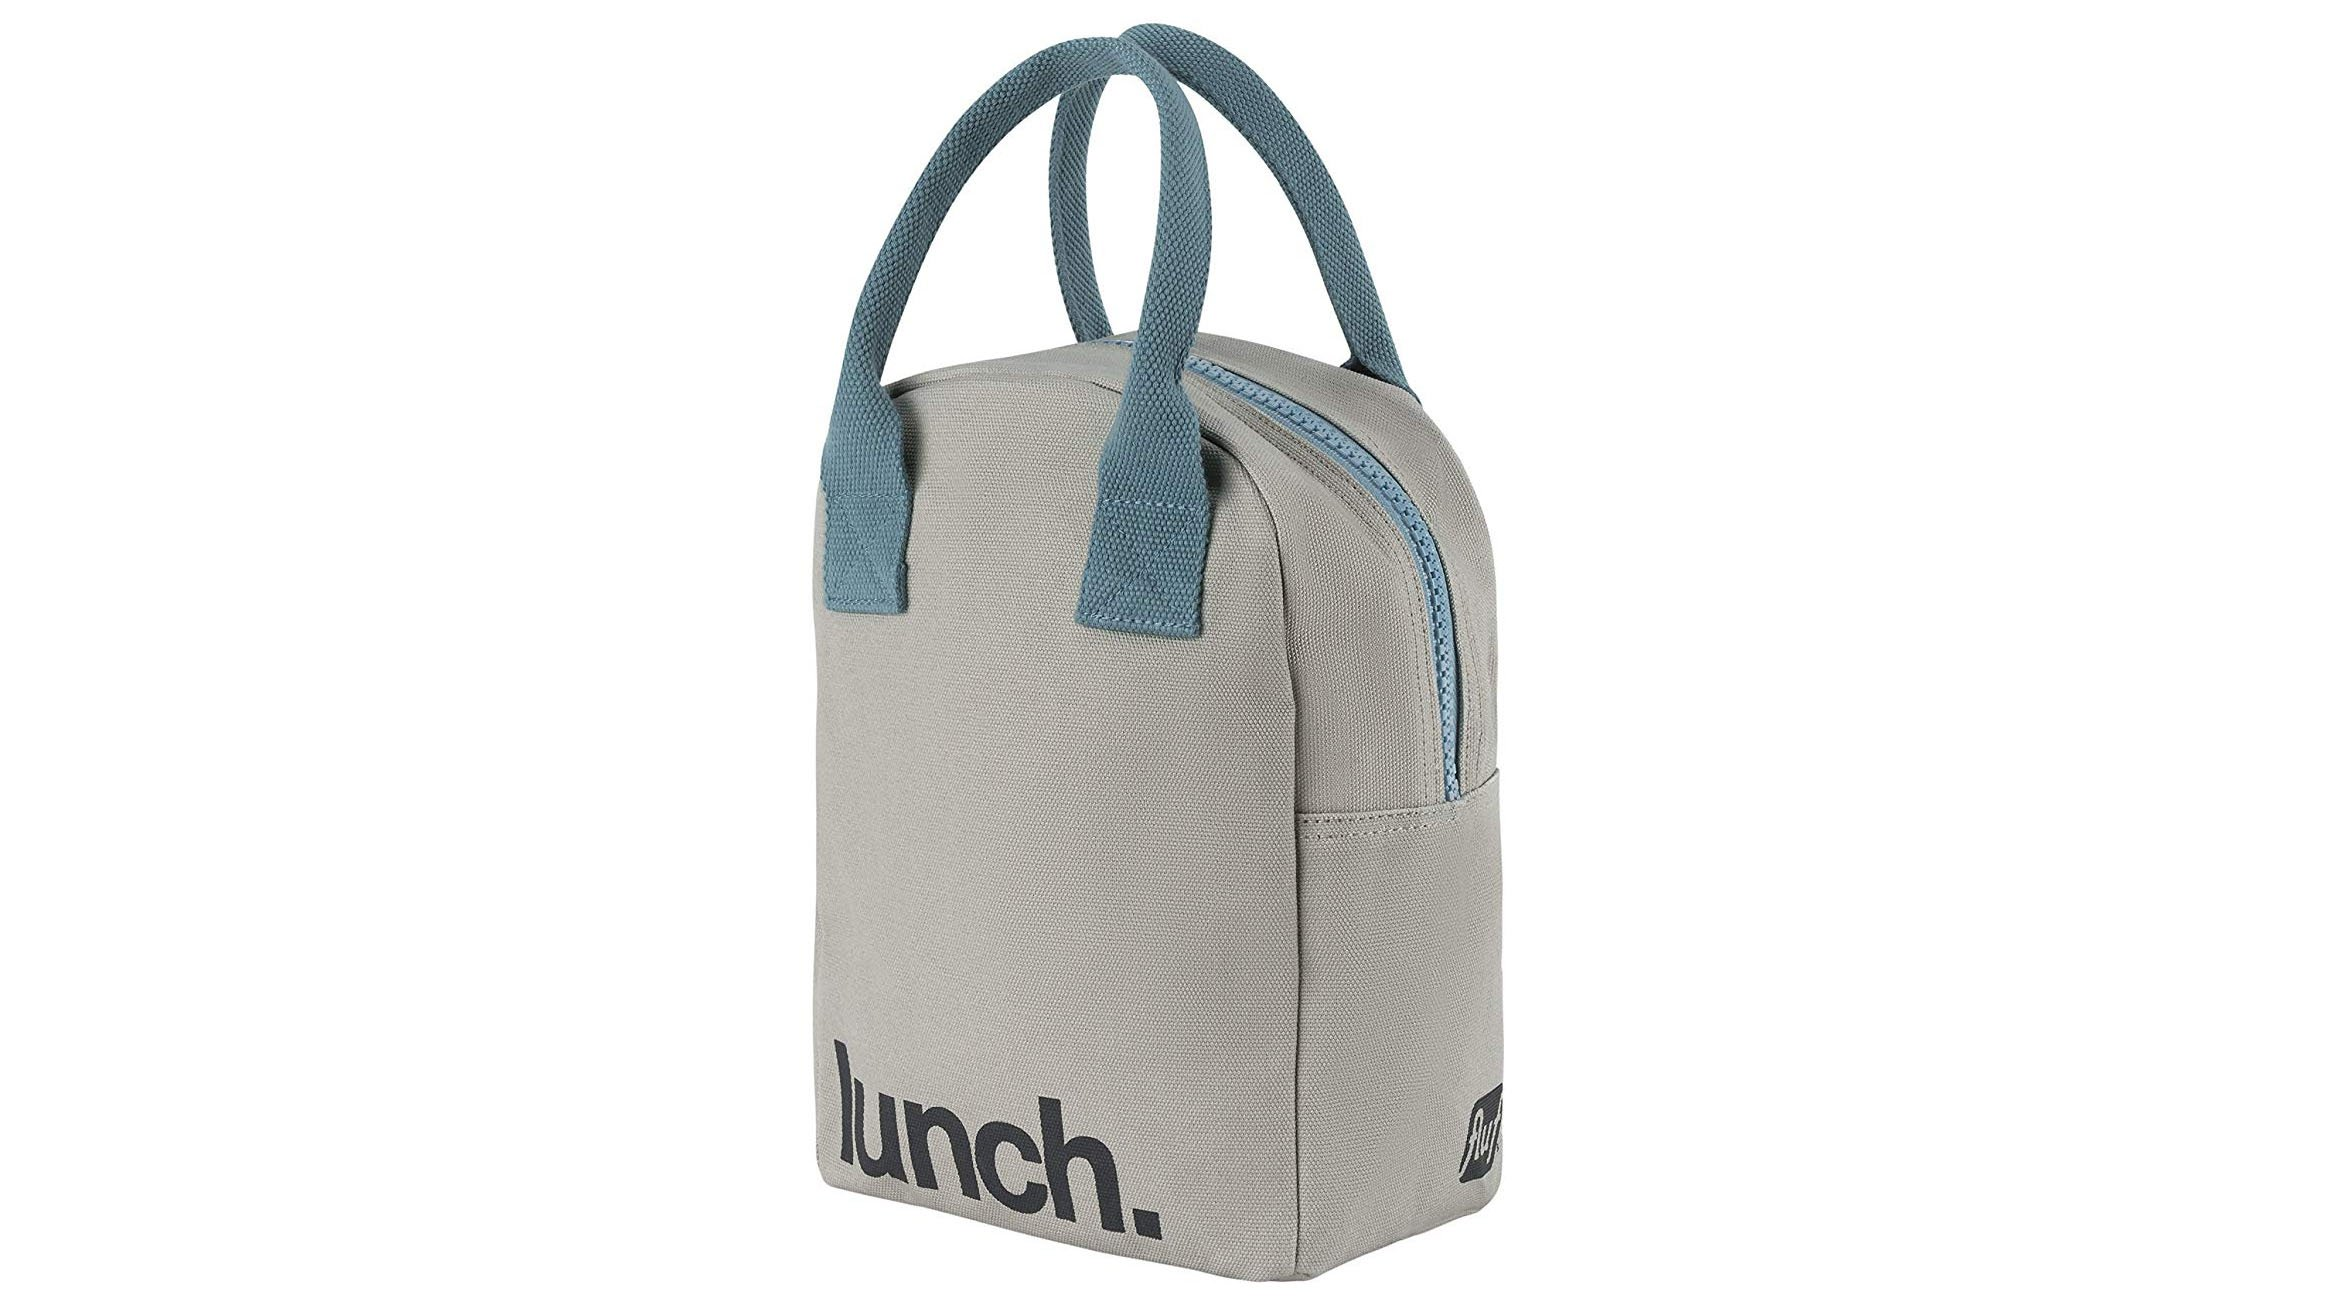 Best Lunchbox 2019 The Best Bento And Sandwich Boxes To Buy